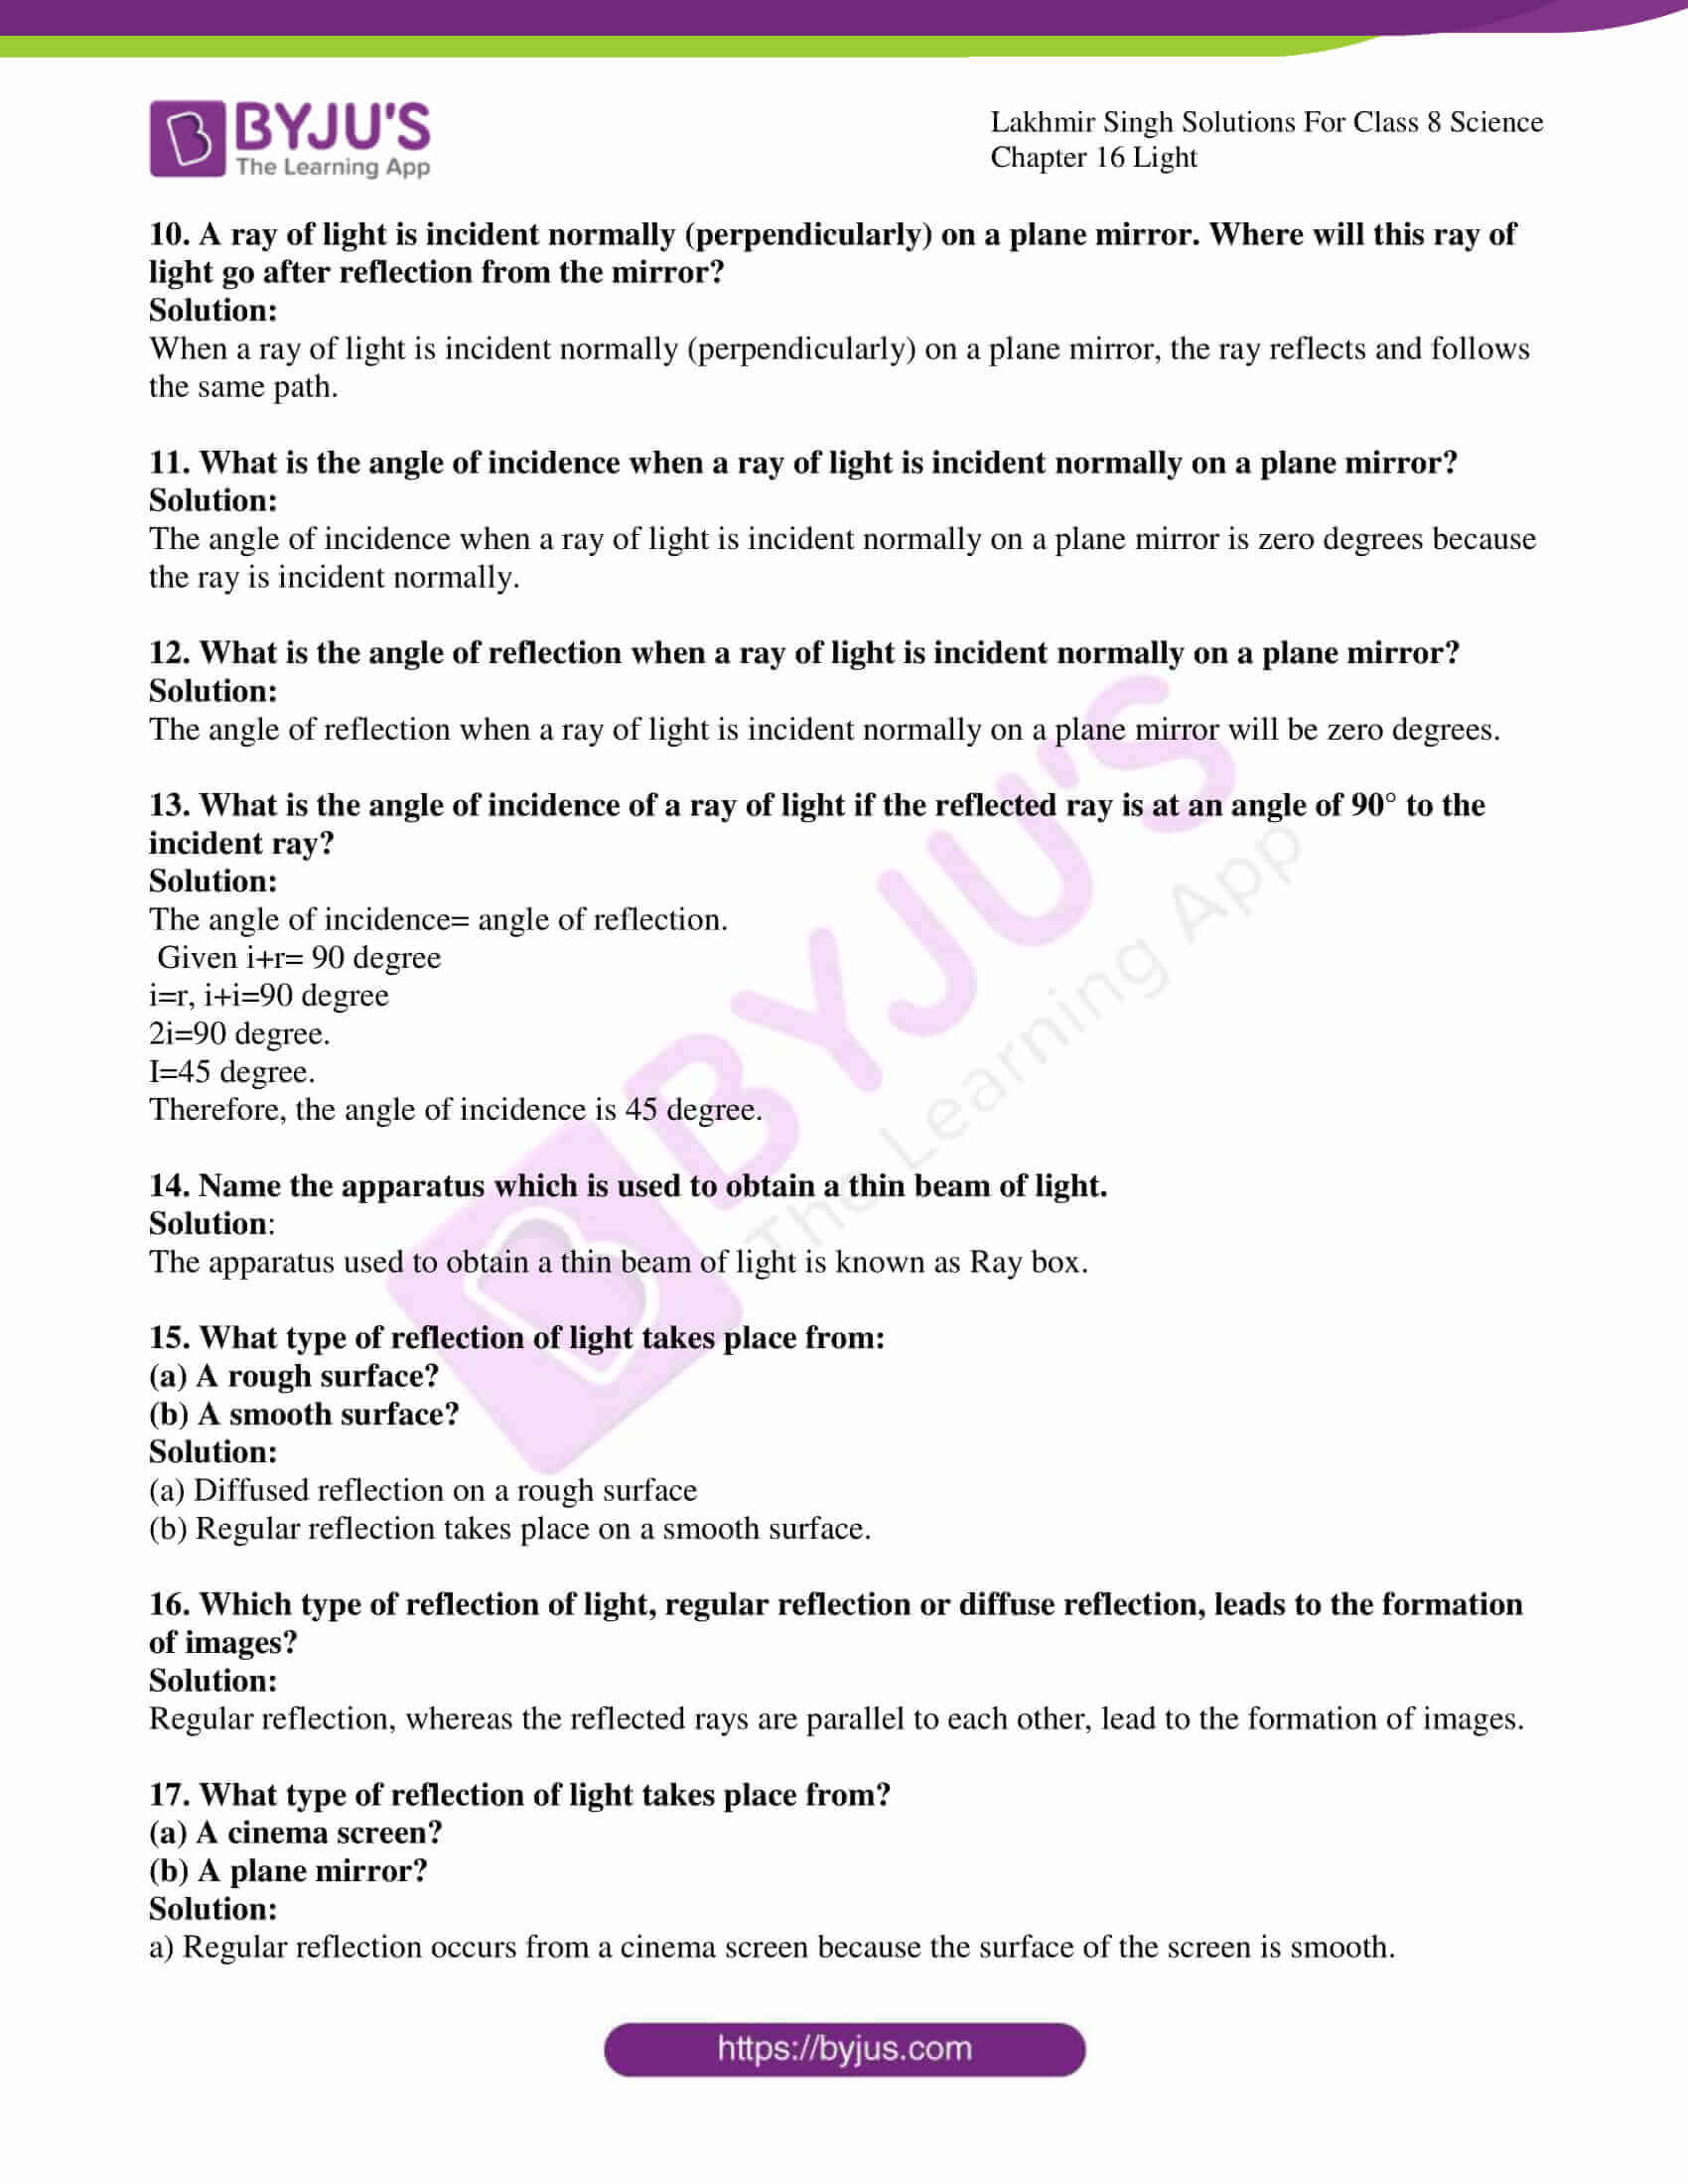 lakhmir singh solutions for class 8 science chapter 16 2